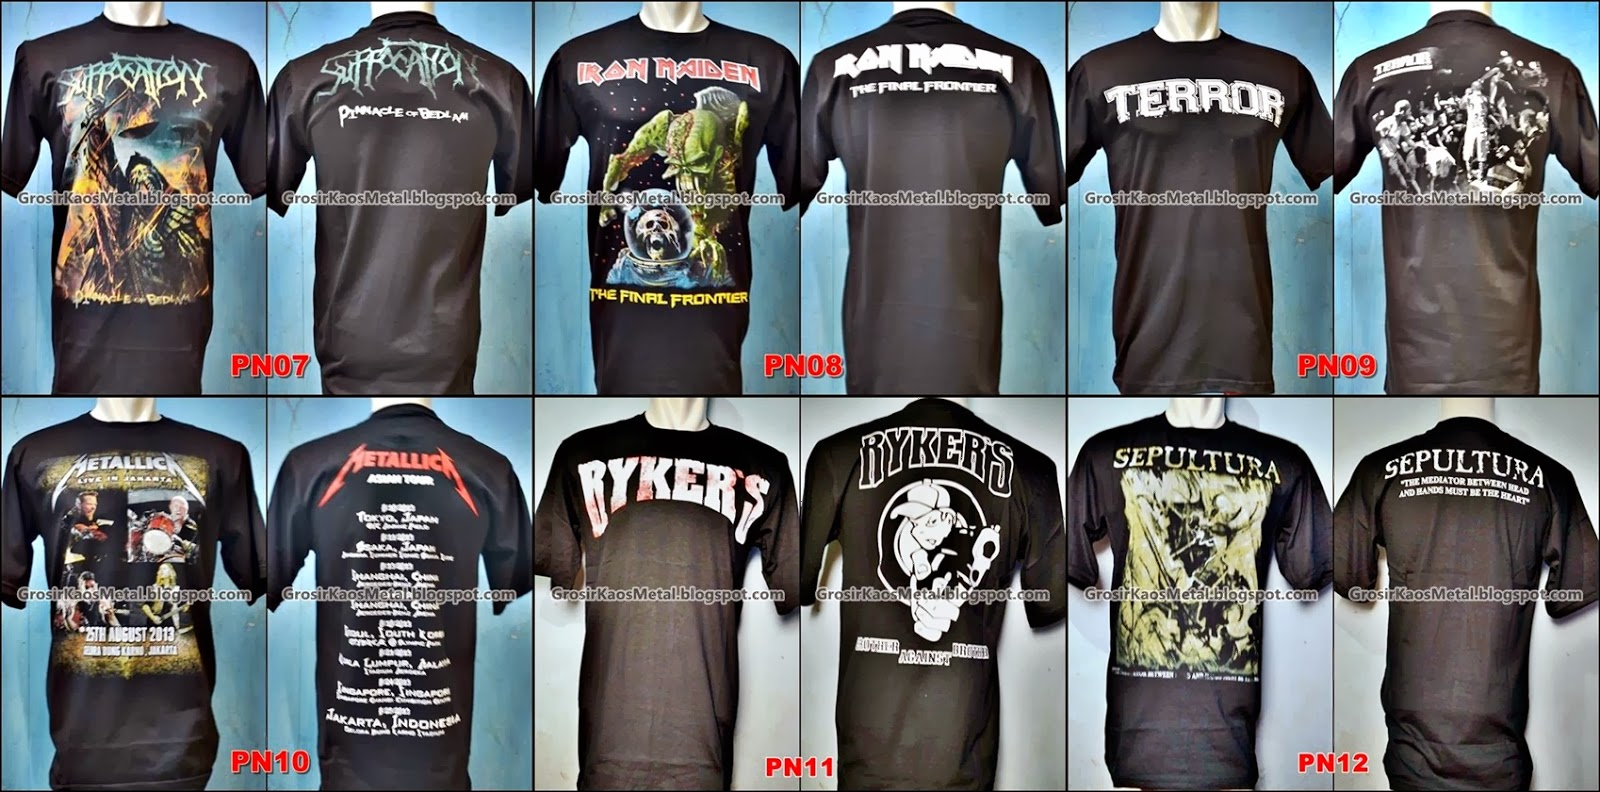 Grosir Kaos Metal Katalog Metalica Suffocation Iron Maiden Terror Metallica Rykers Sepultura